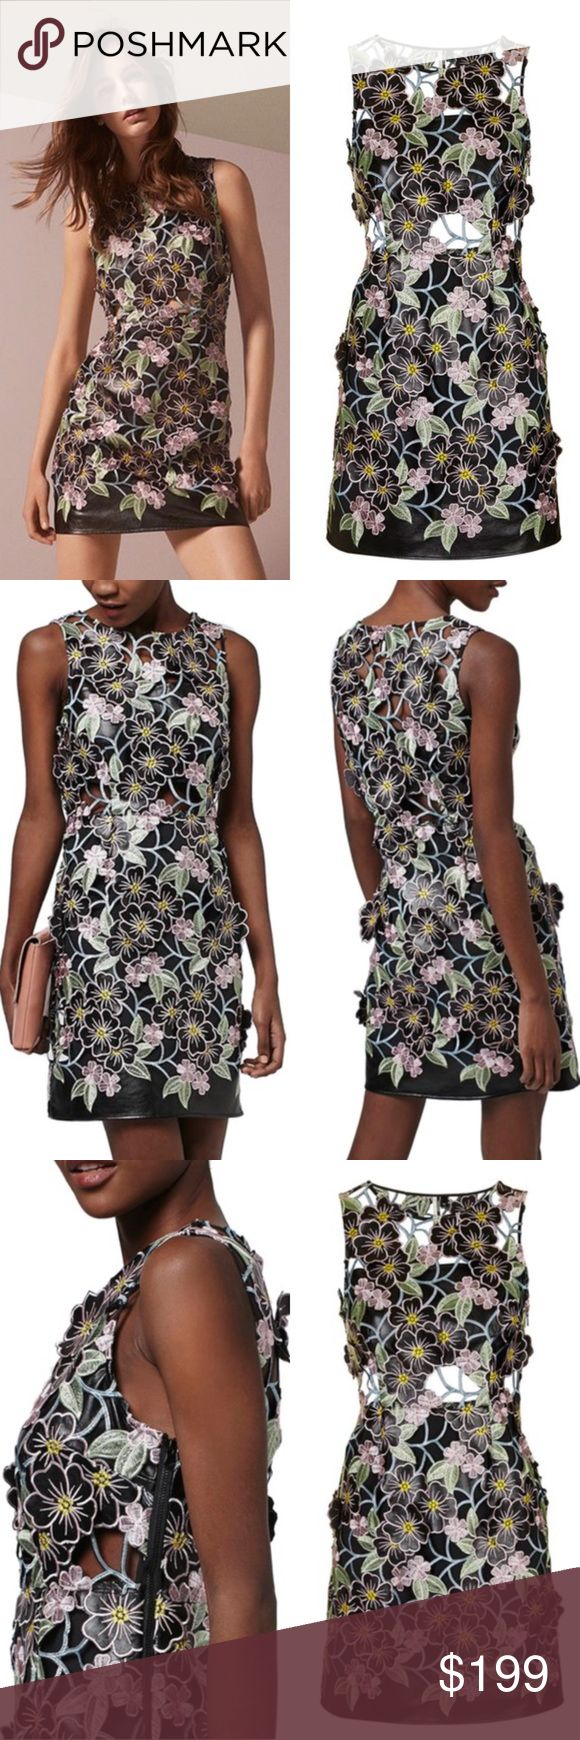 Topshop Leather Floral Dress|AMAZING Absolutely stunning dress by Topshop.  3D floral appliqué throughout dress shell.  Lined skirt.  Top half is lined with leather bandeau.  Intricate embroidery throughout.  Cutout waist.  Size 4 in Top Shop equivalent to US sizes 0-2. Topshop Dresses Mini